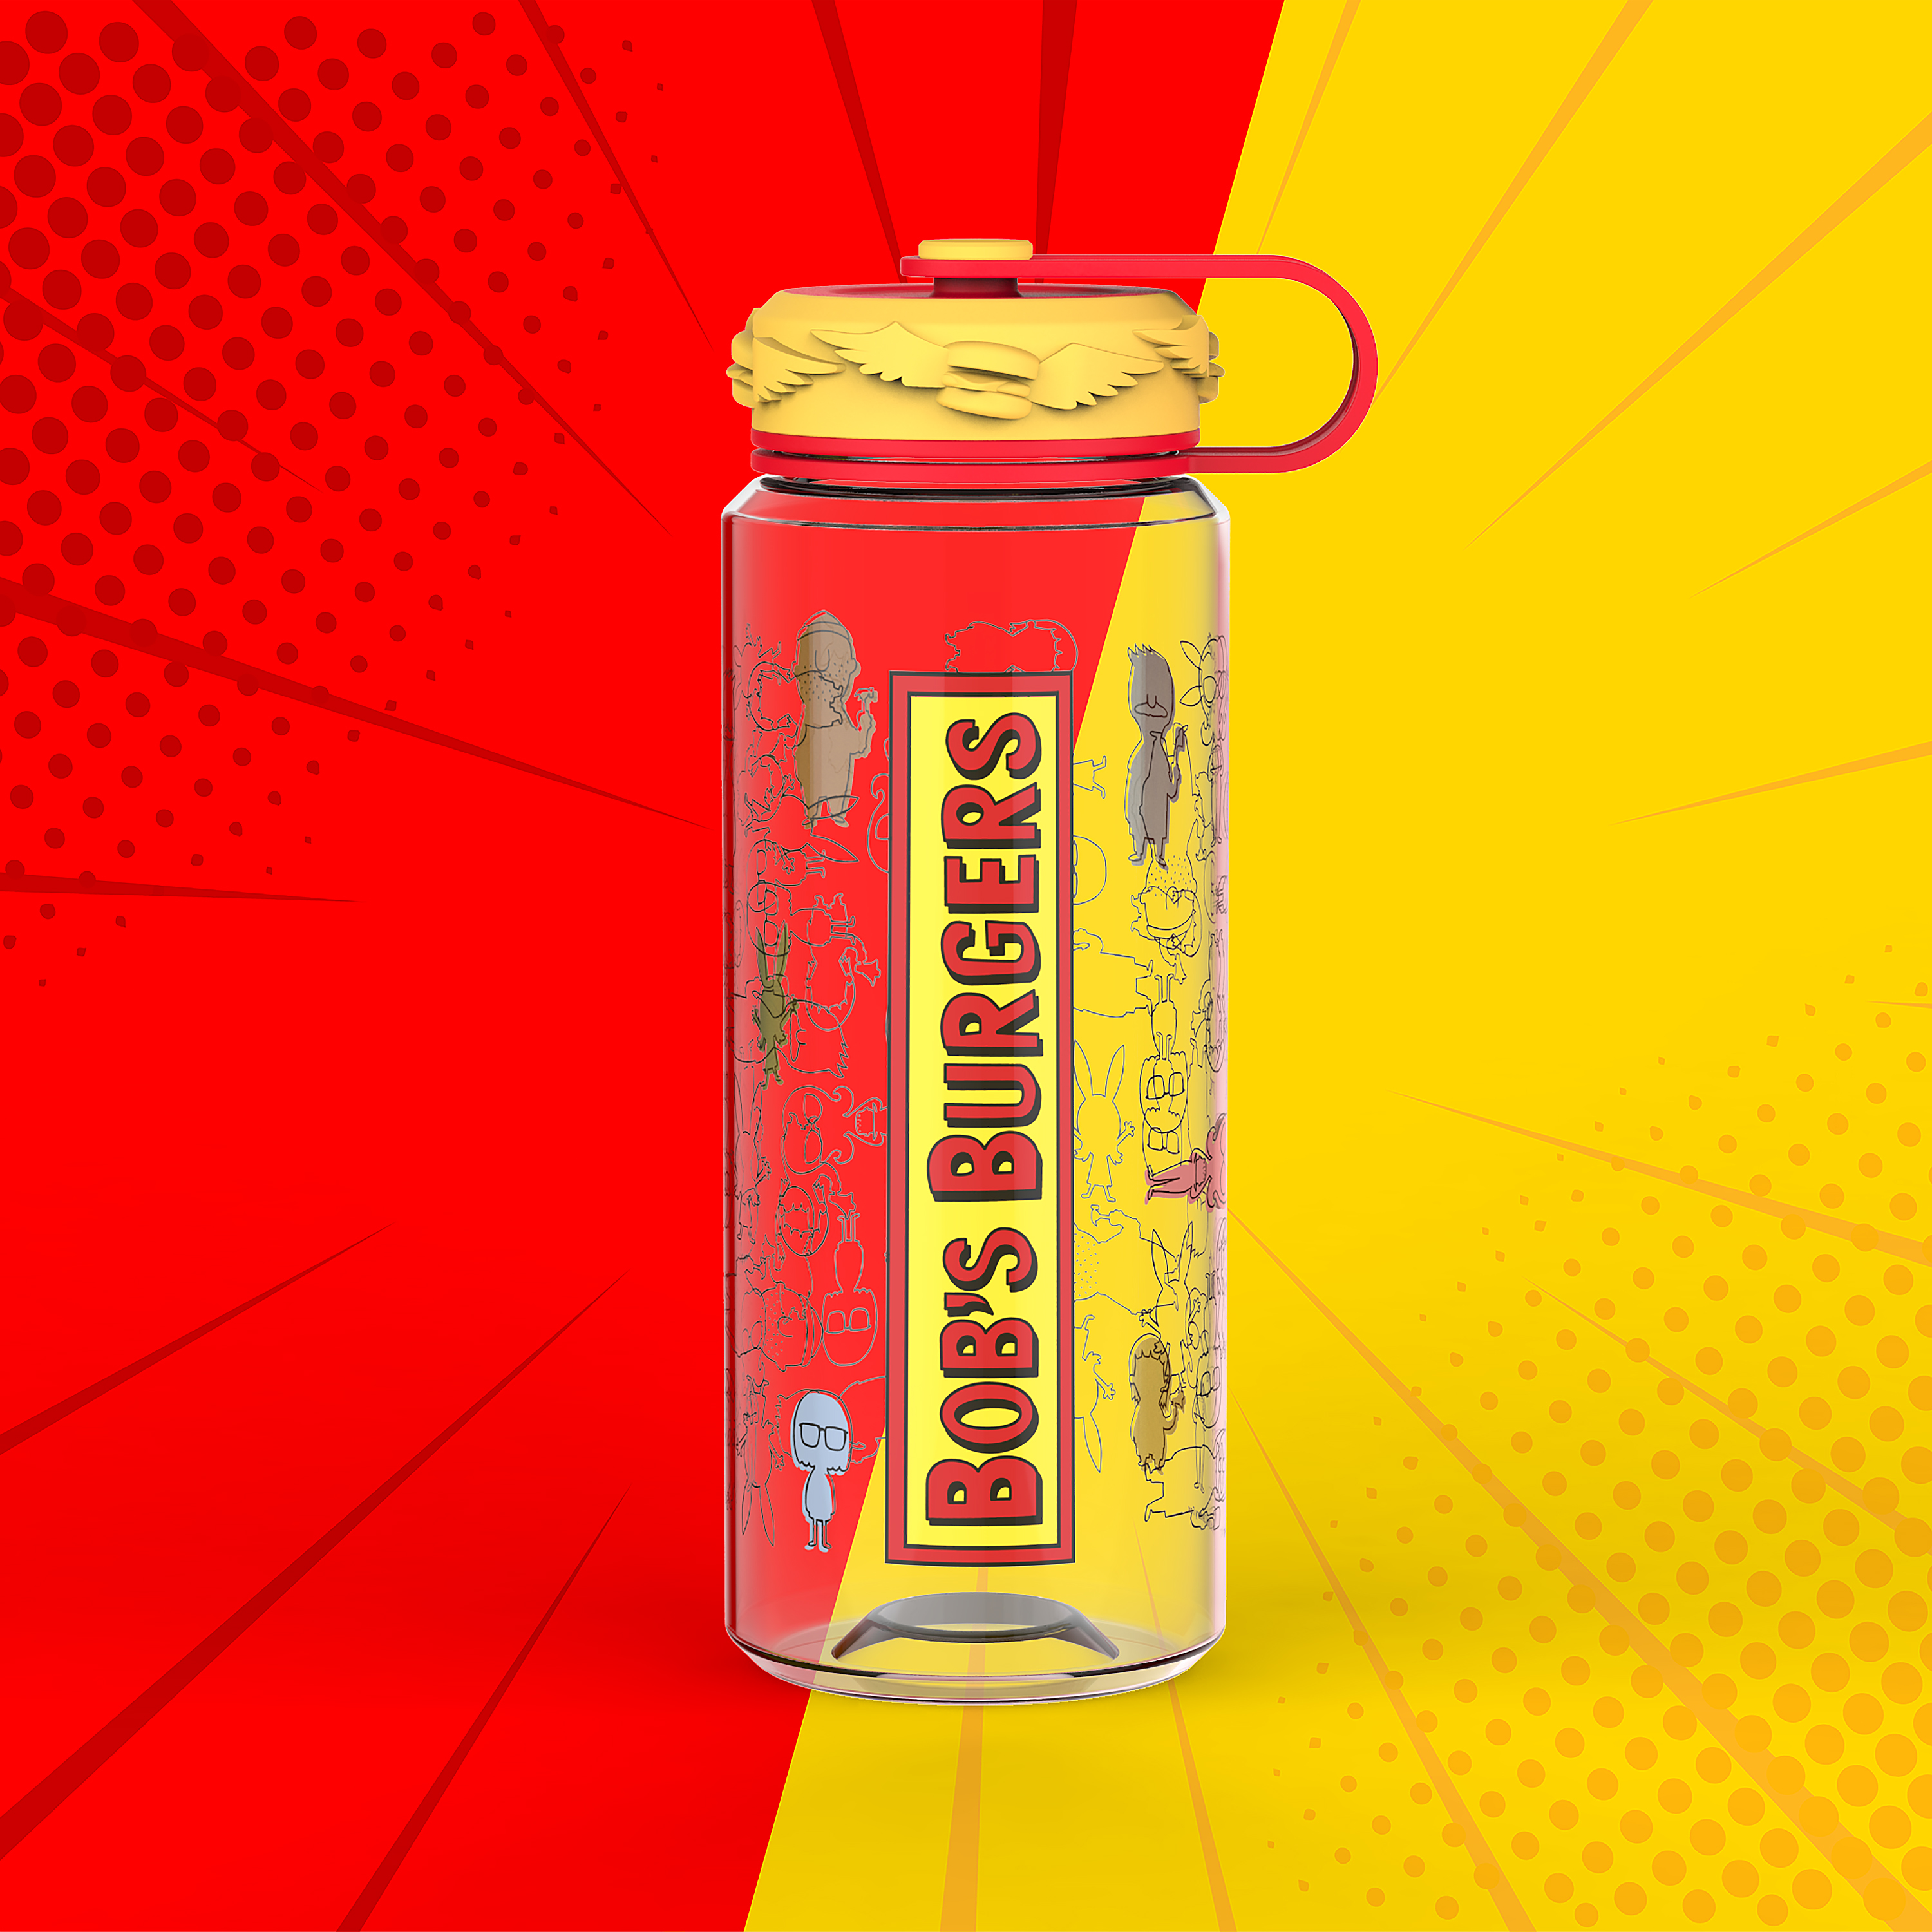 Bobs Burgers 36 ounce Water Bottles, The Belcher Family slideshow image 9